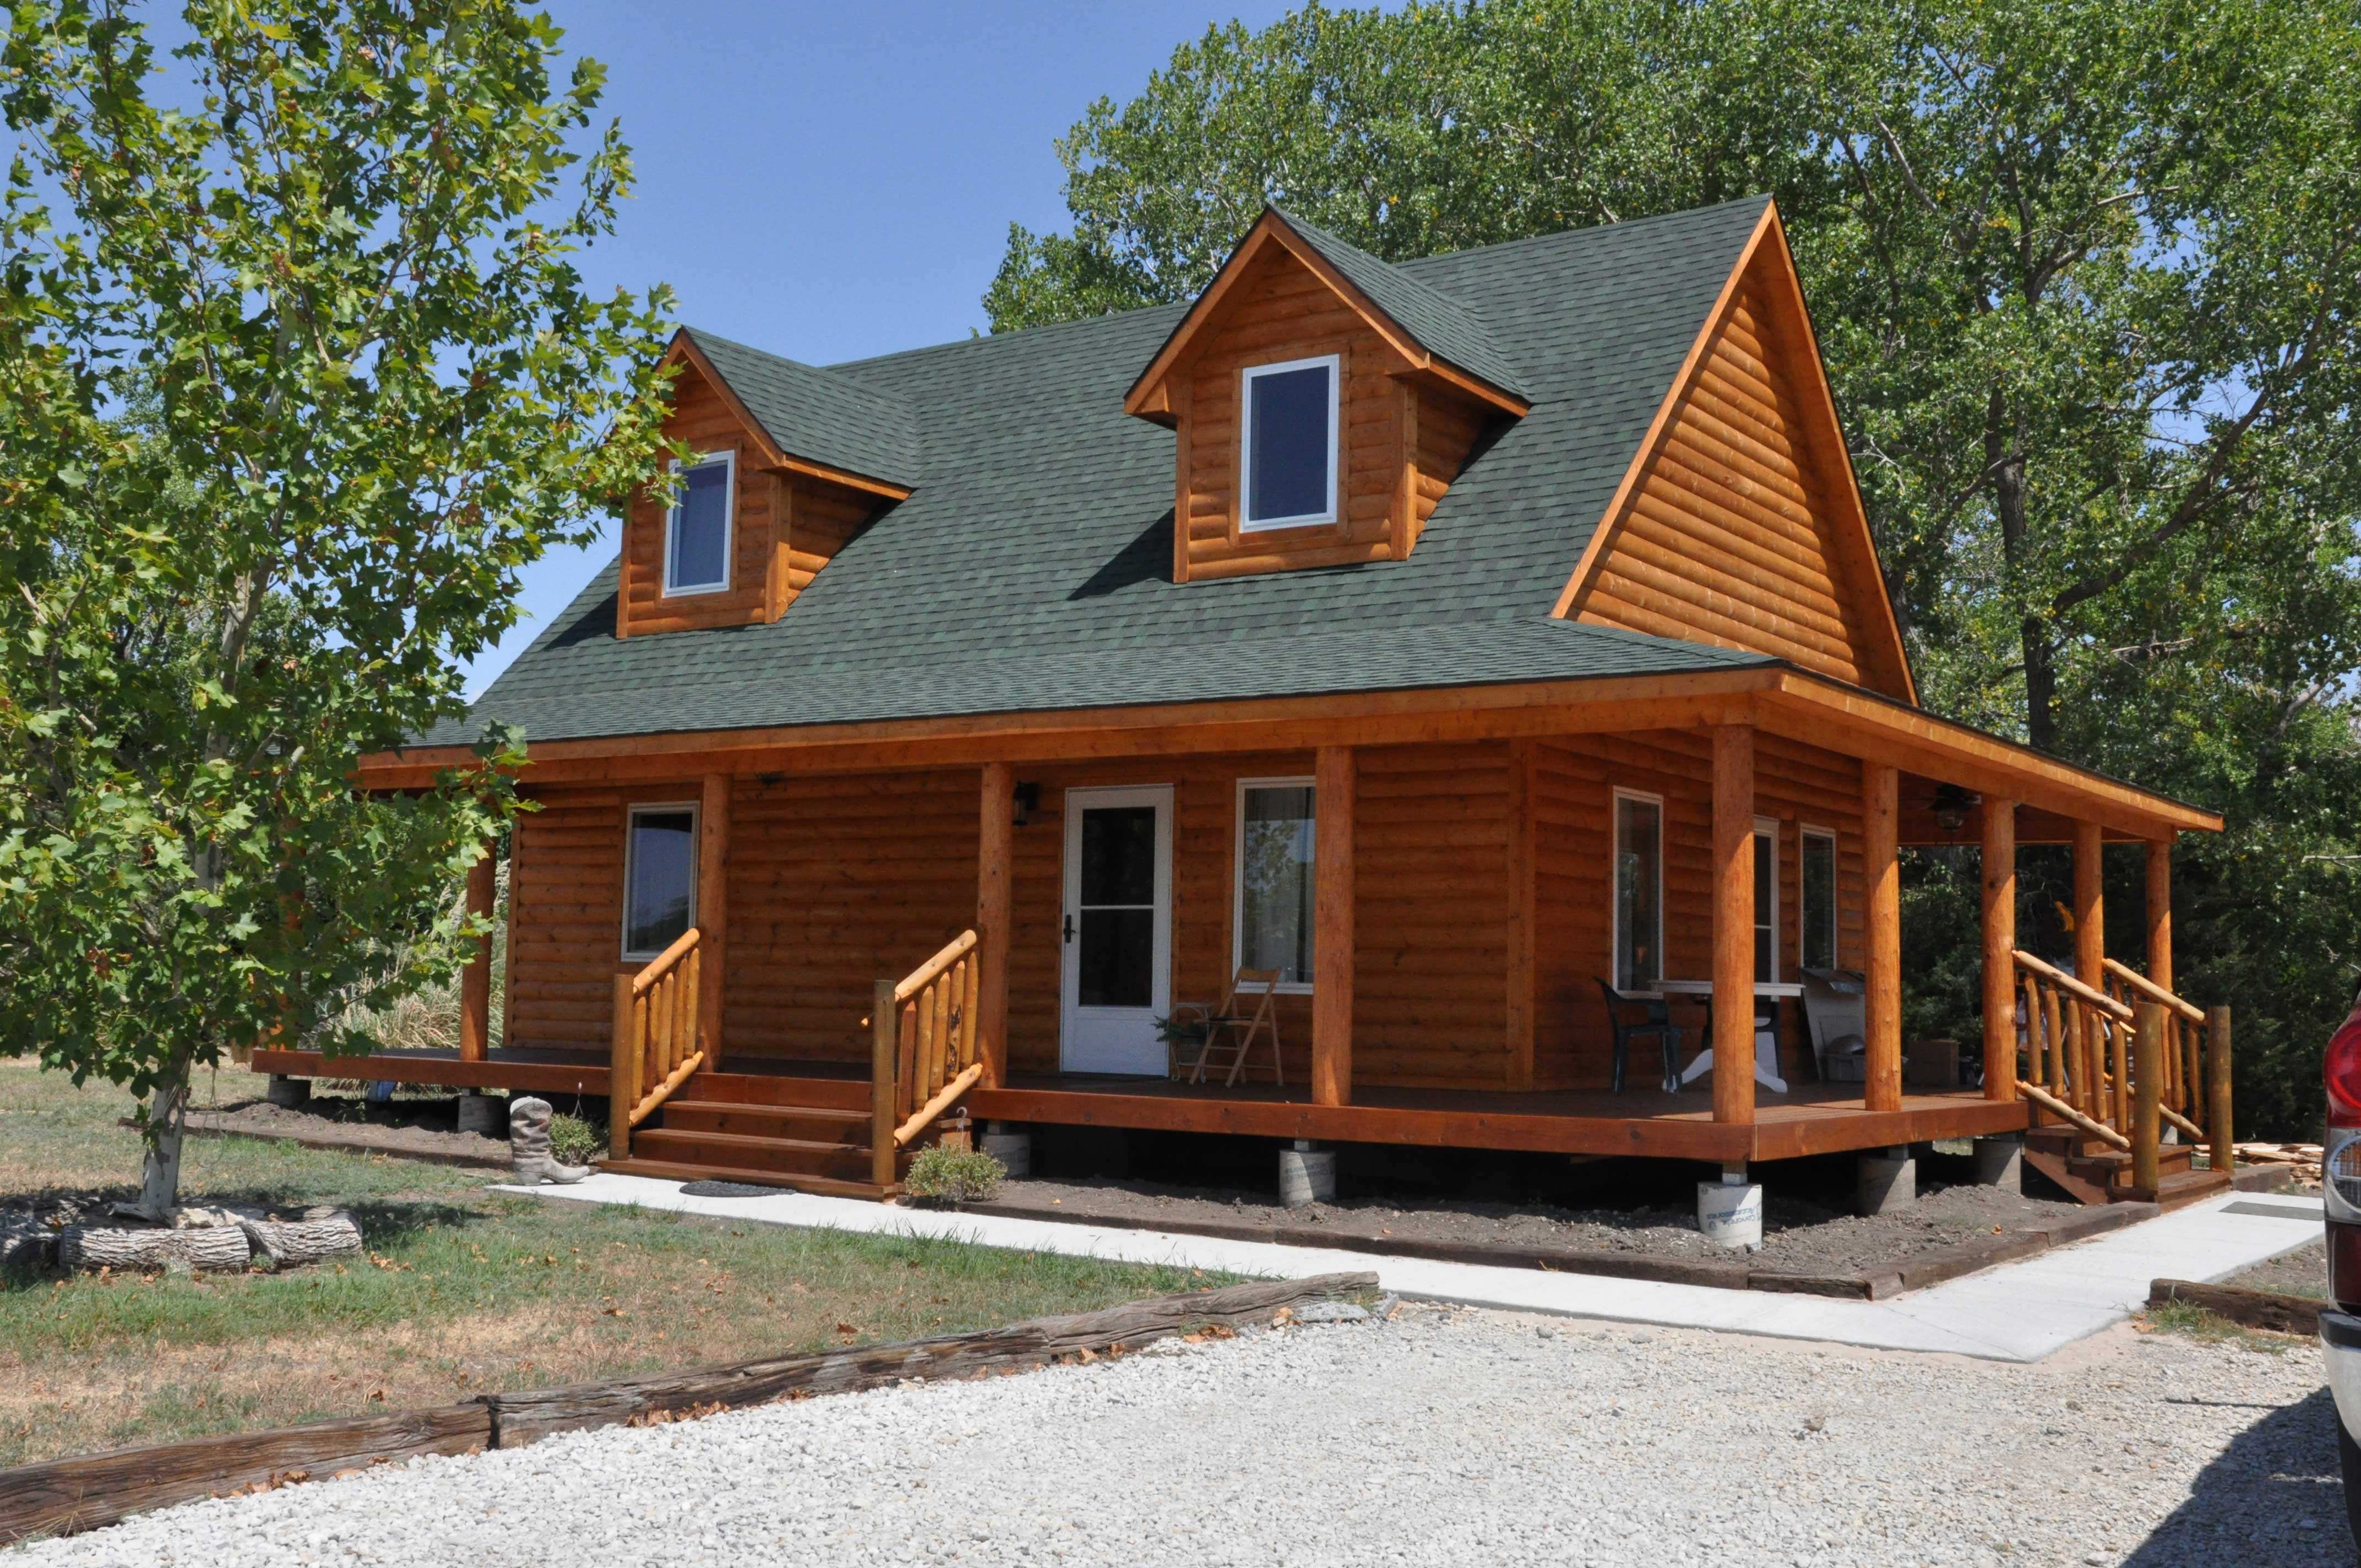 Wonderful image of  IN TOUCH WITH US TODAY & REQUEST A FREE QUOTE ON A WRAPPED PORCH CABIN with #6E3A1F color and 4288x2848 pixels